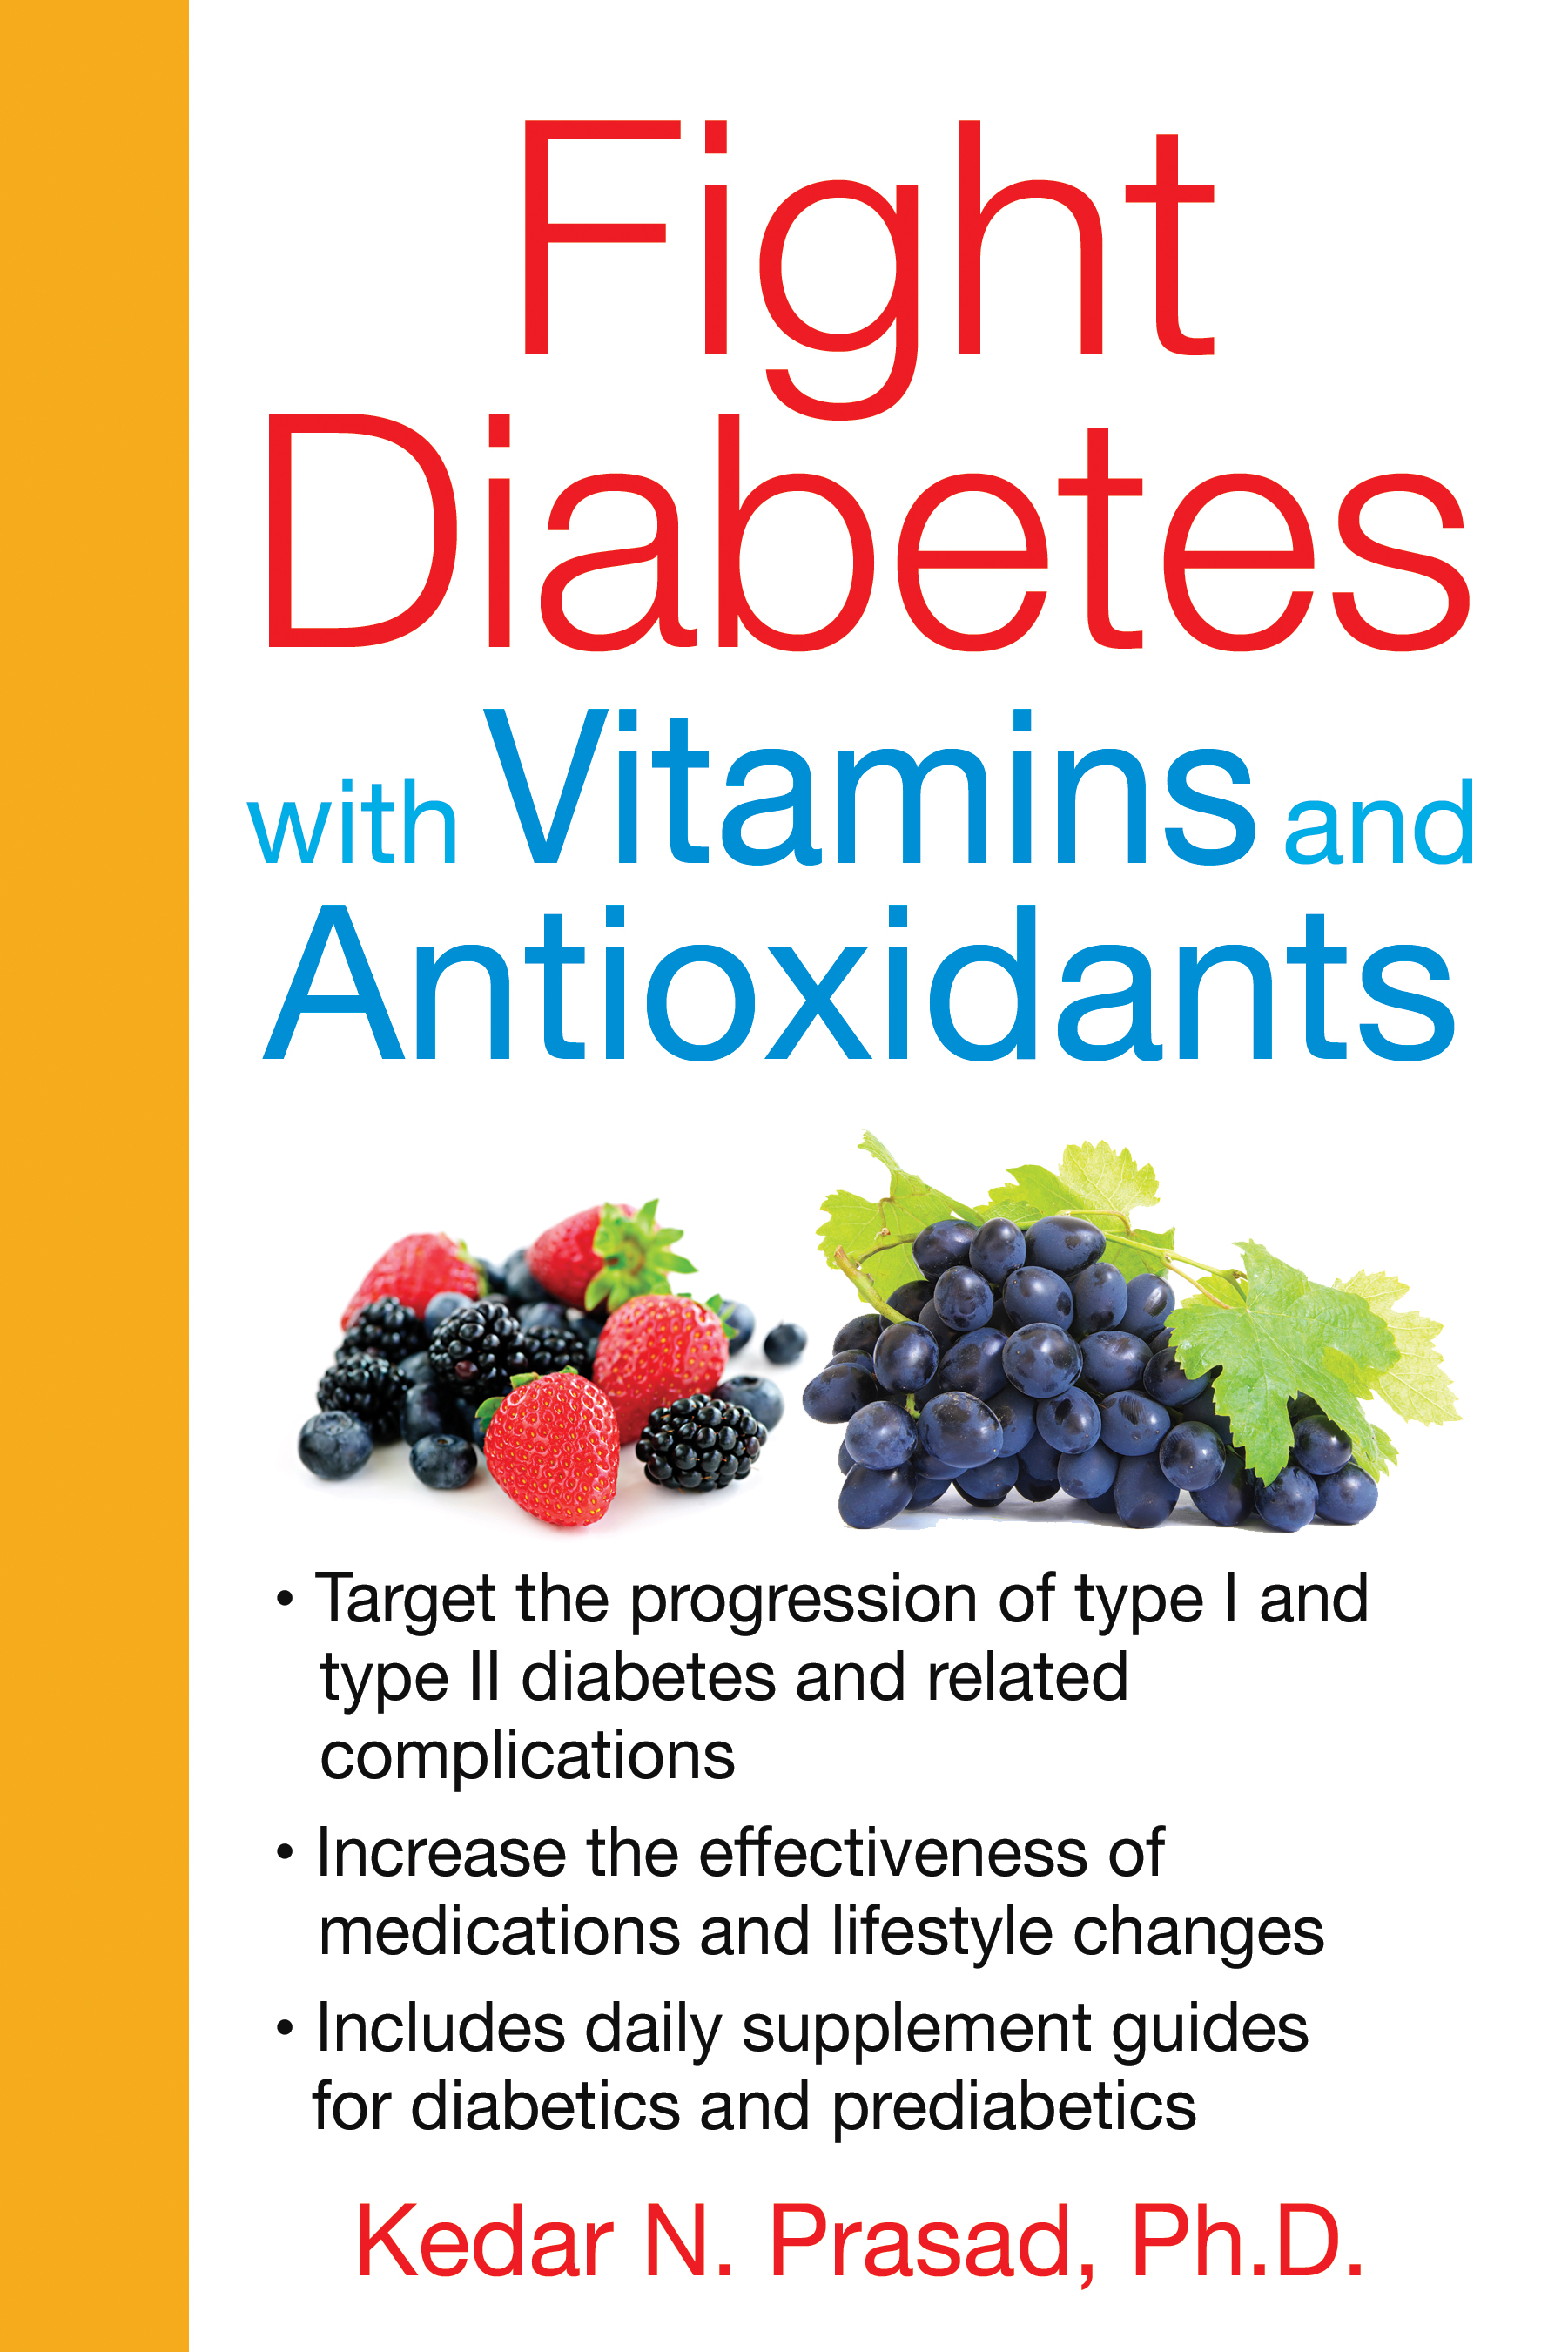 Fight-diabetes-with-vitamins-and-antioxidants-9781620551660_hr